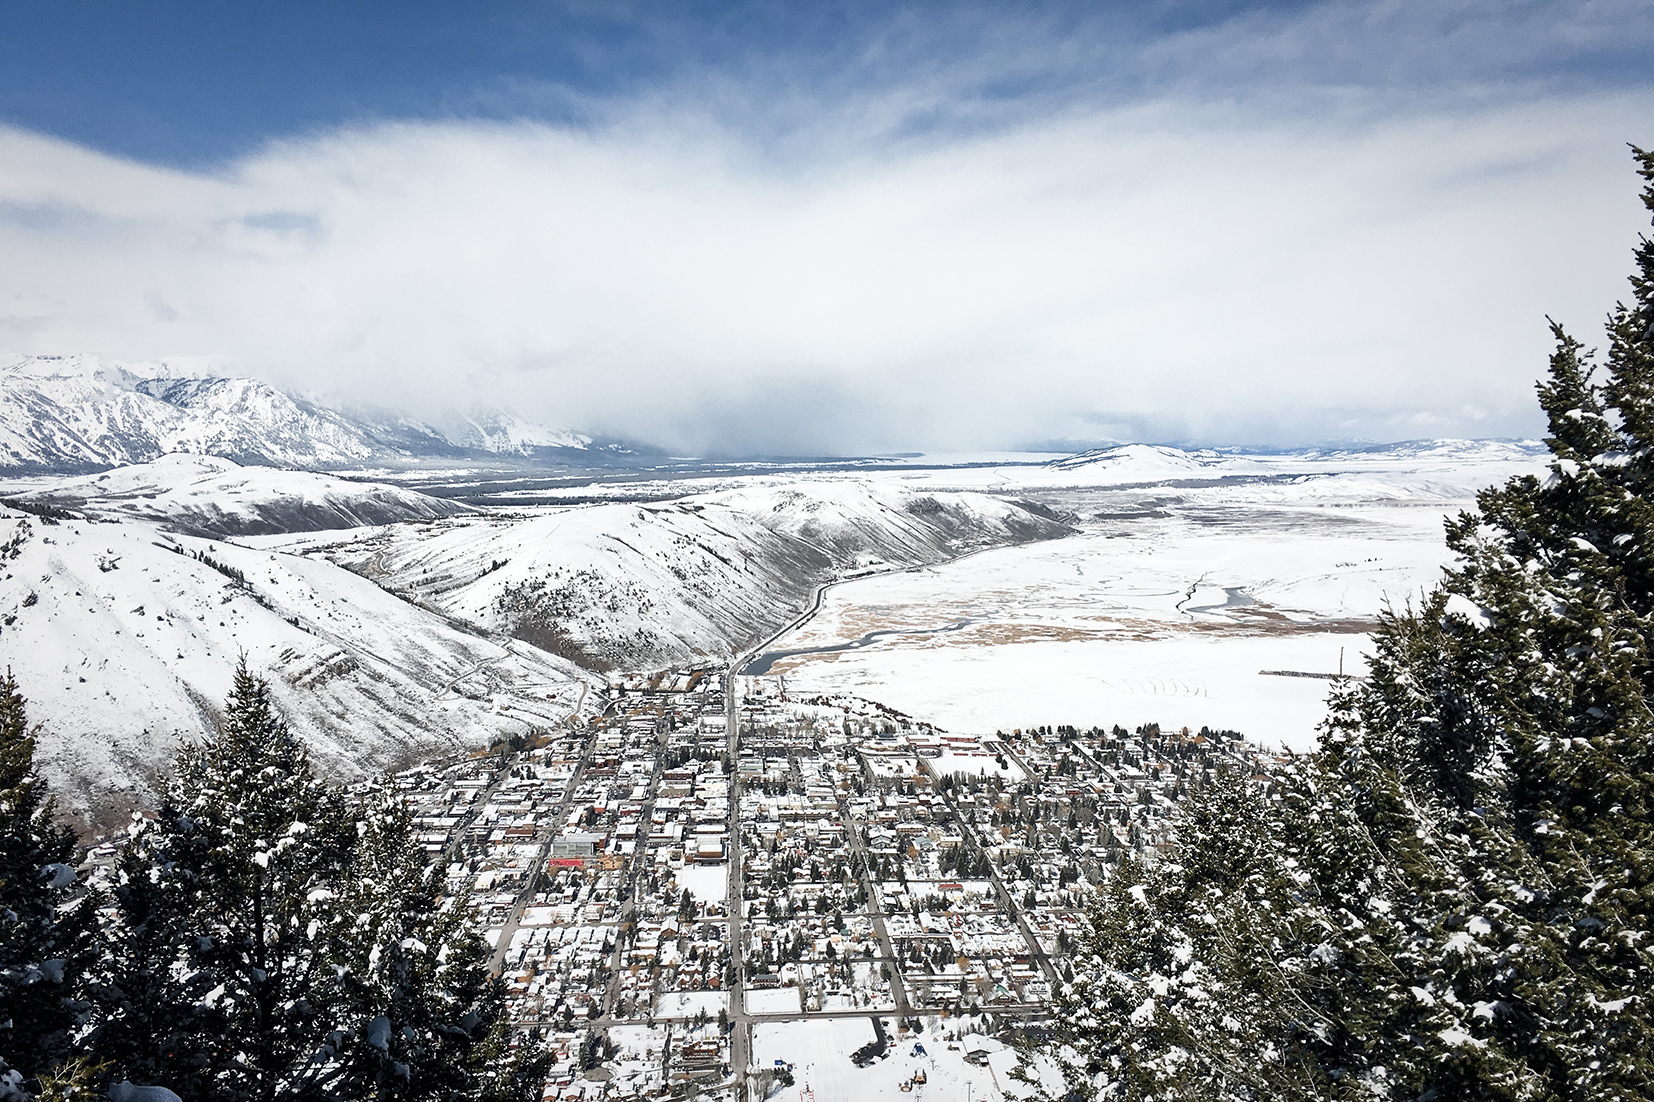 Jackson Hole as seen from the top of Snow King Mountain